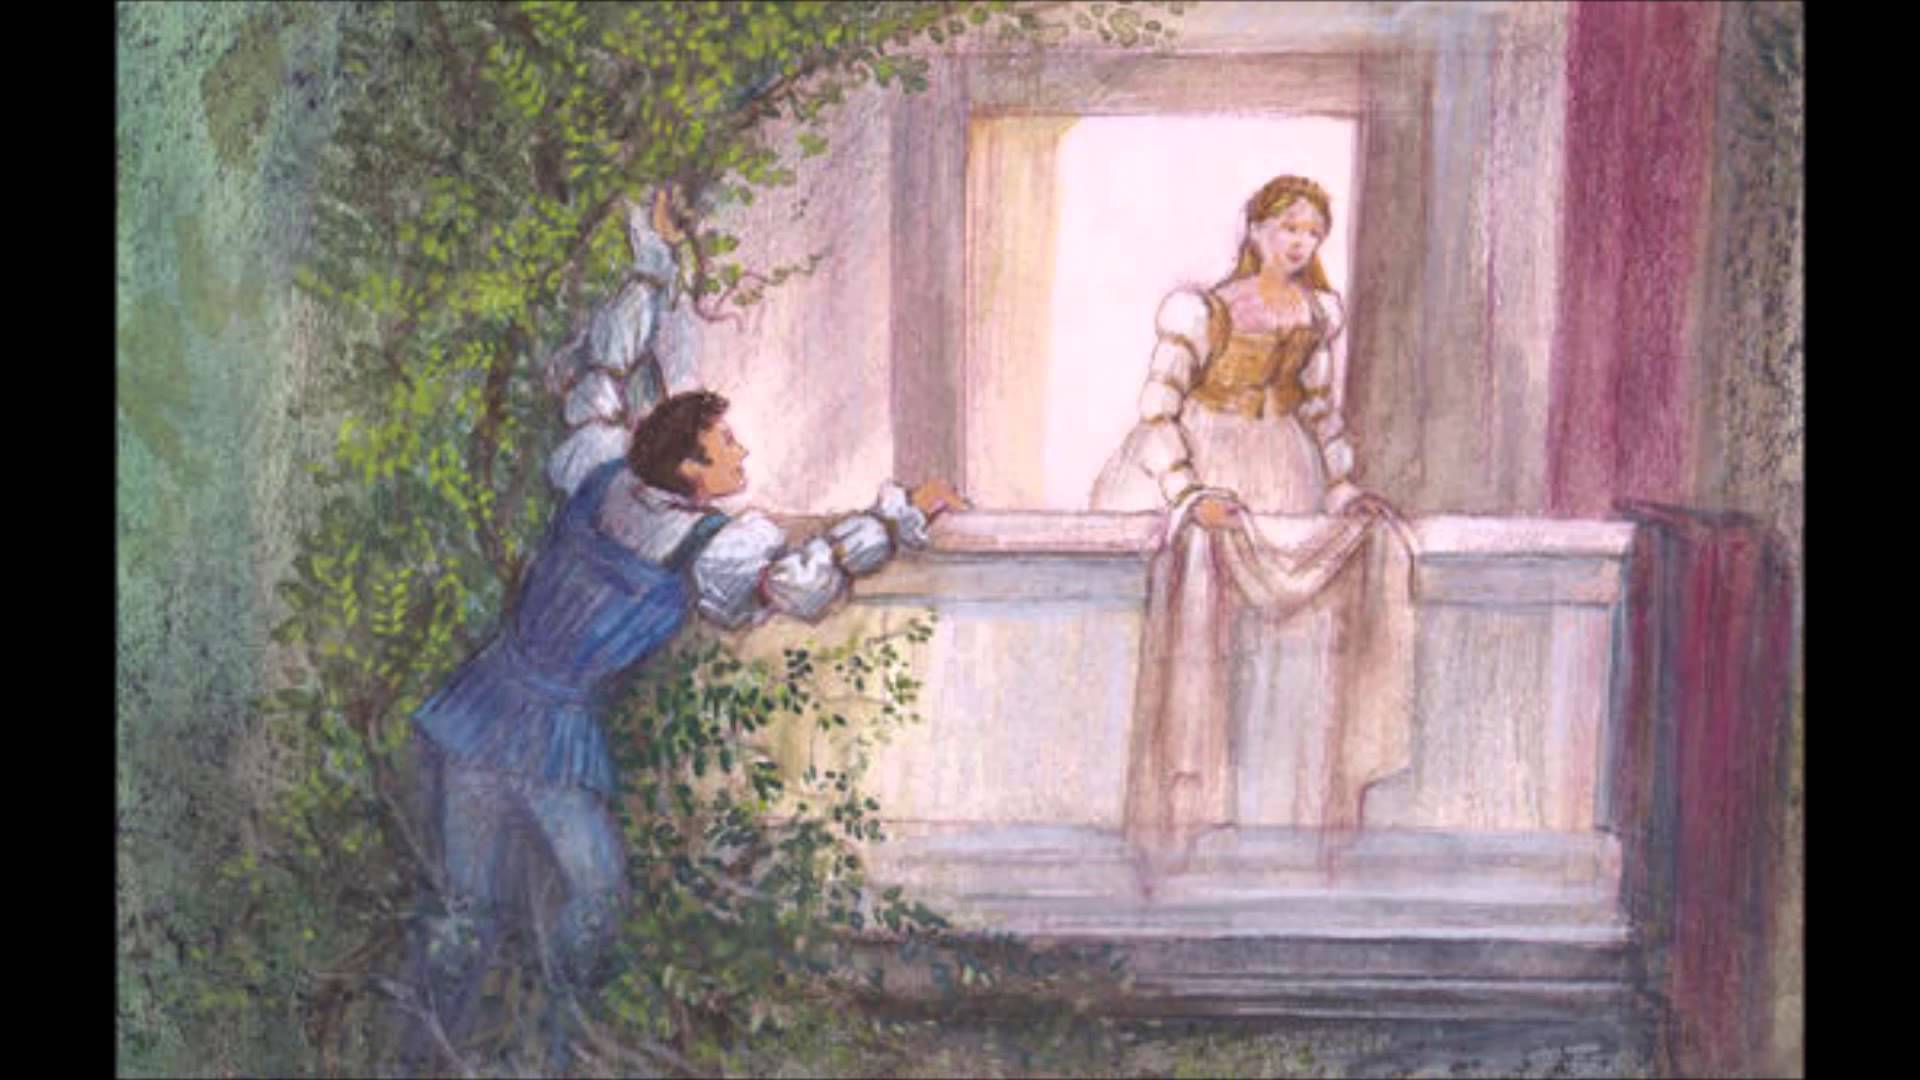 1920x1080 Balcony Scene Romeo and Juliet